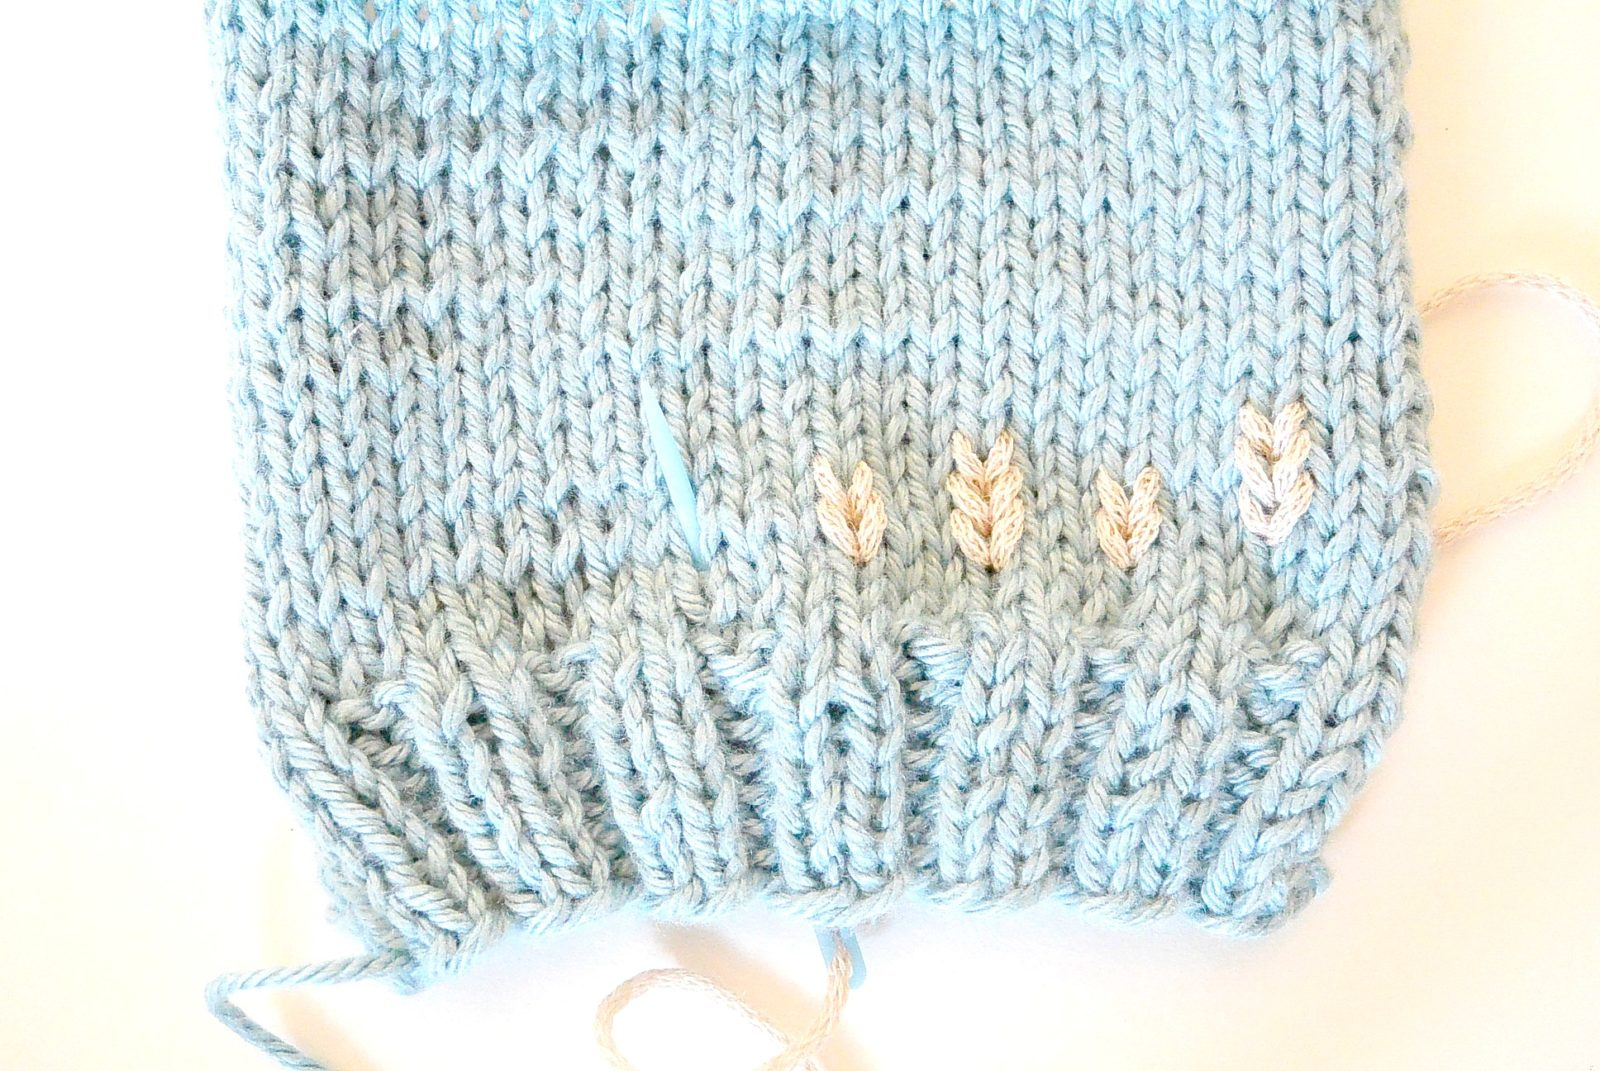 Embroider on Knit Tutorial – Duplicate Stitch